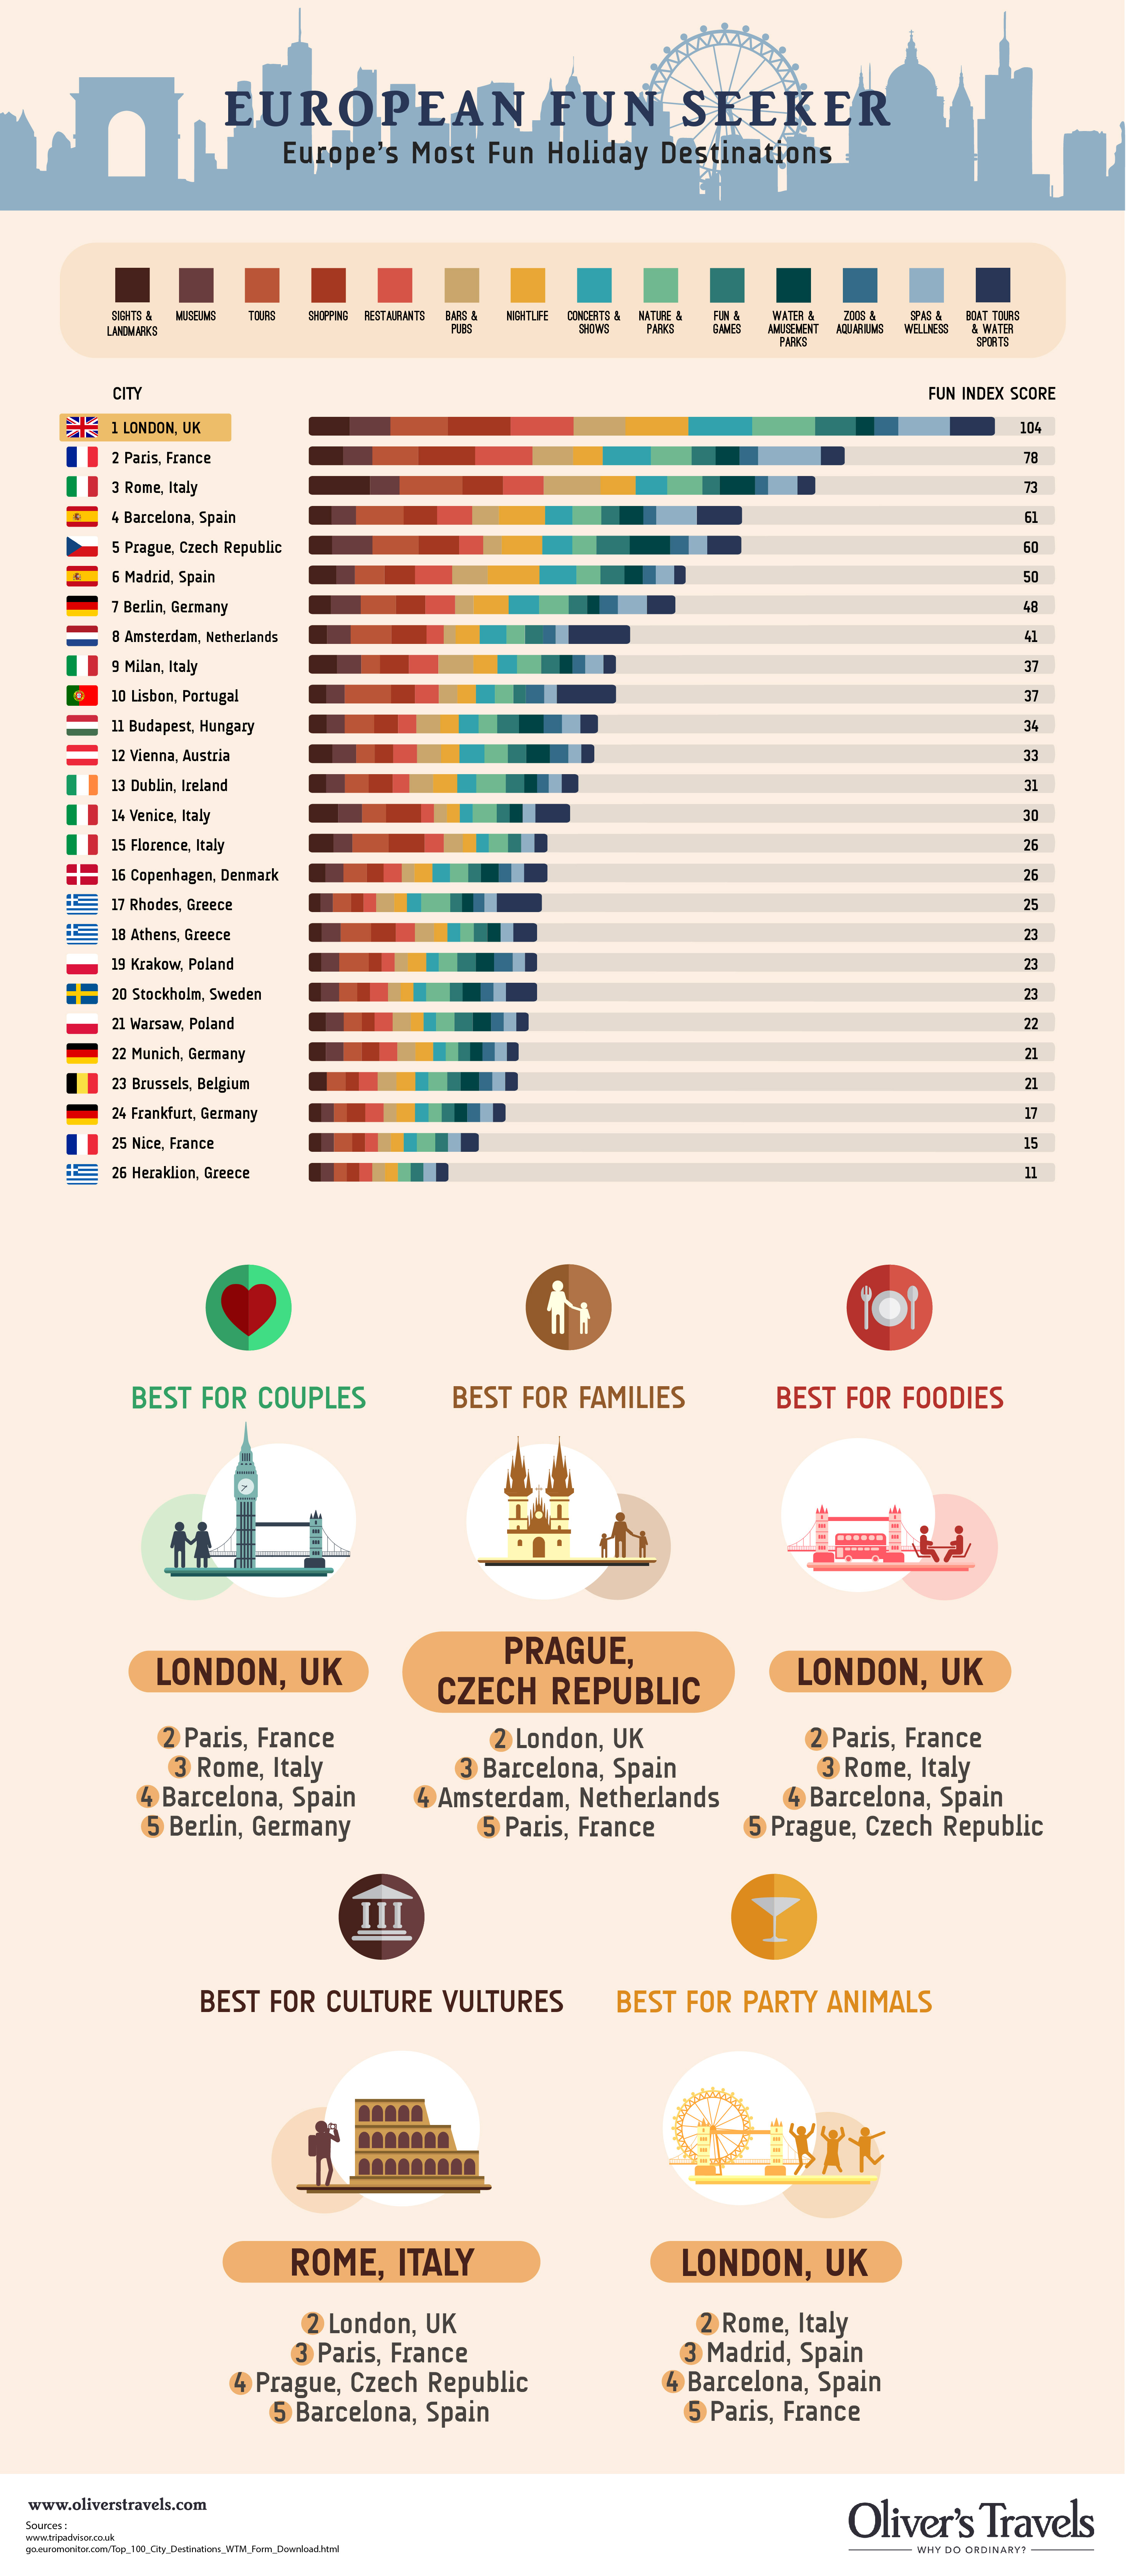 fun cities in Europe ranked